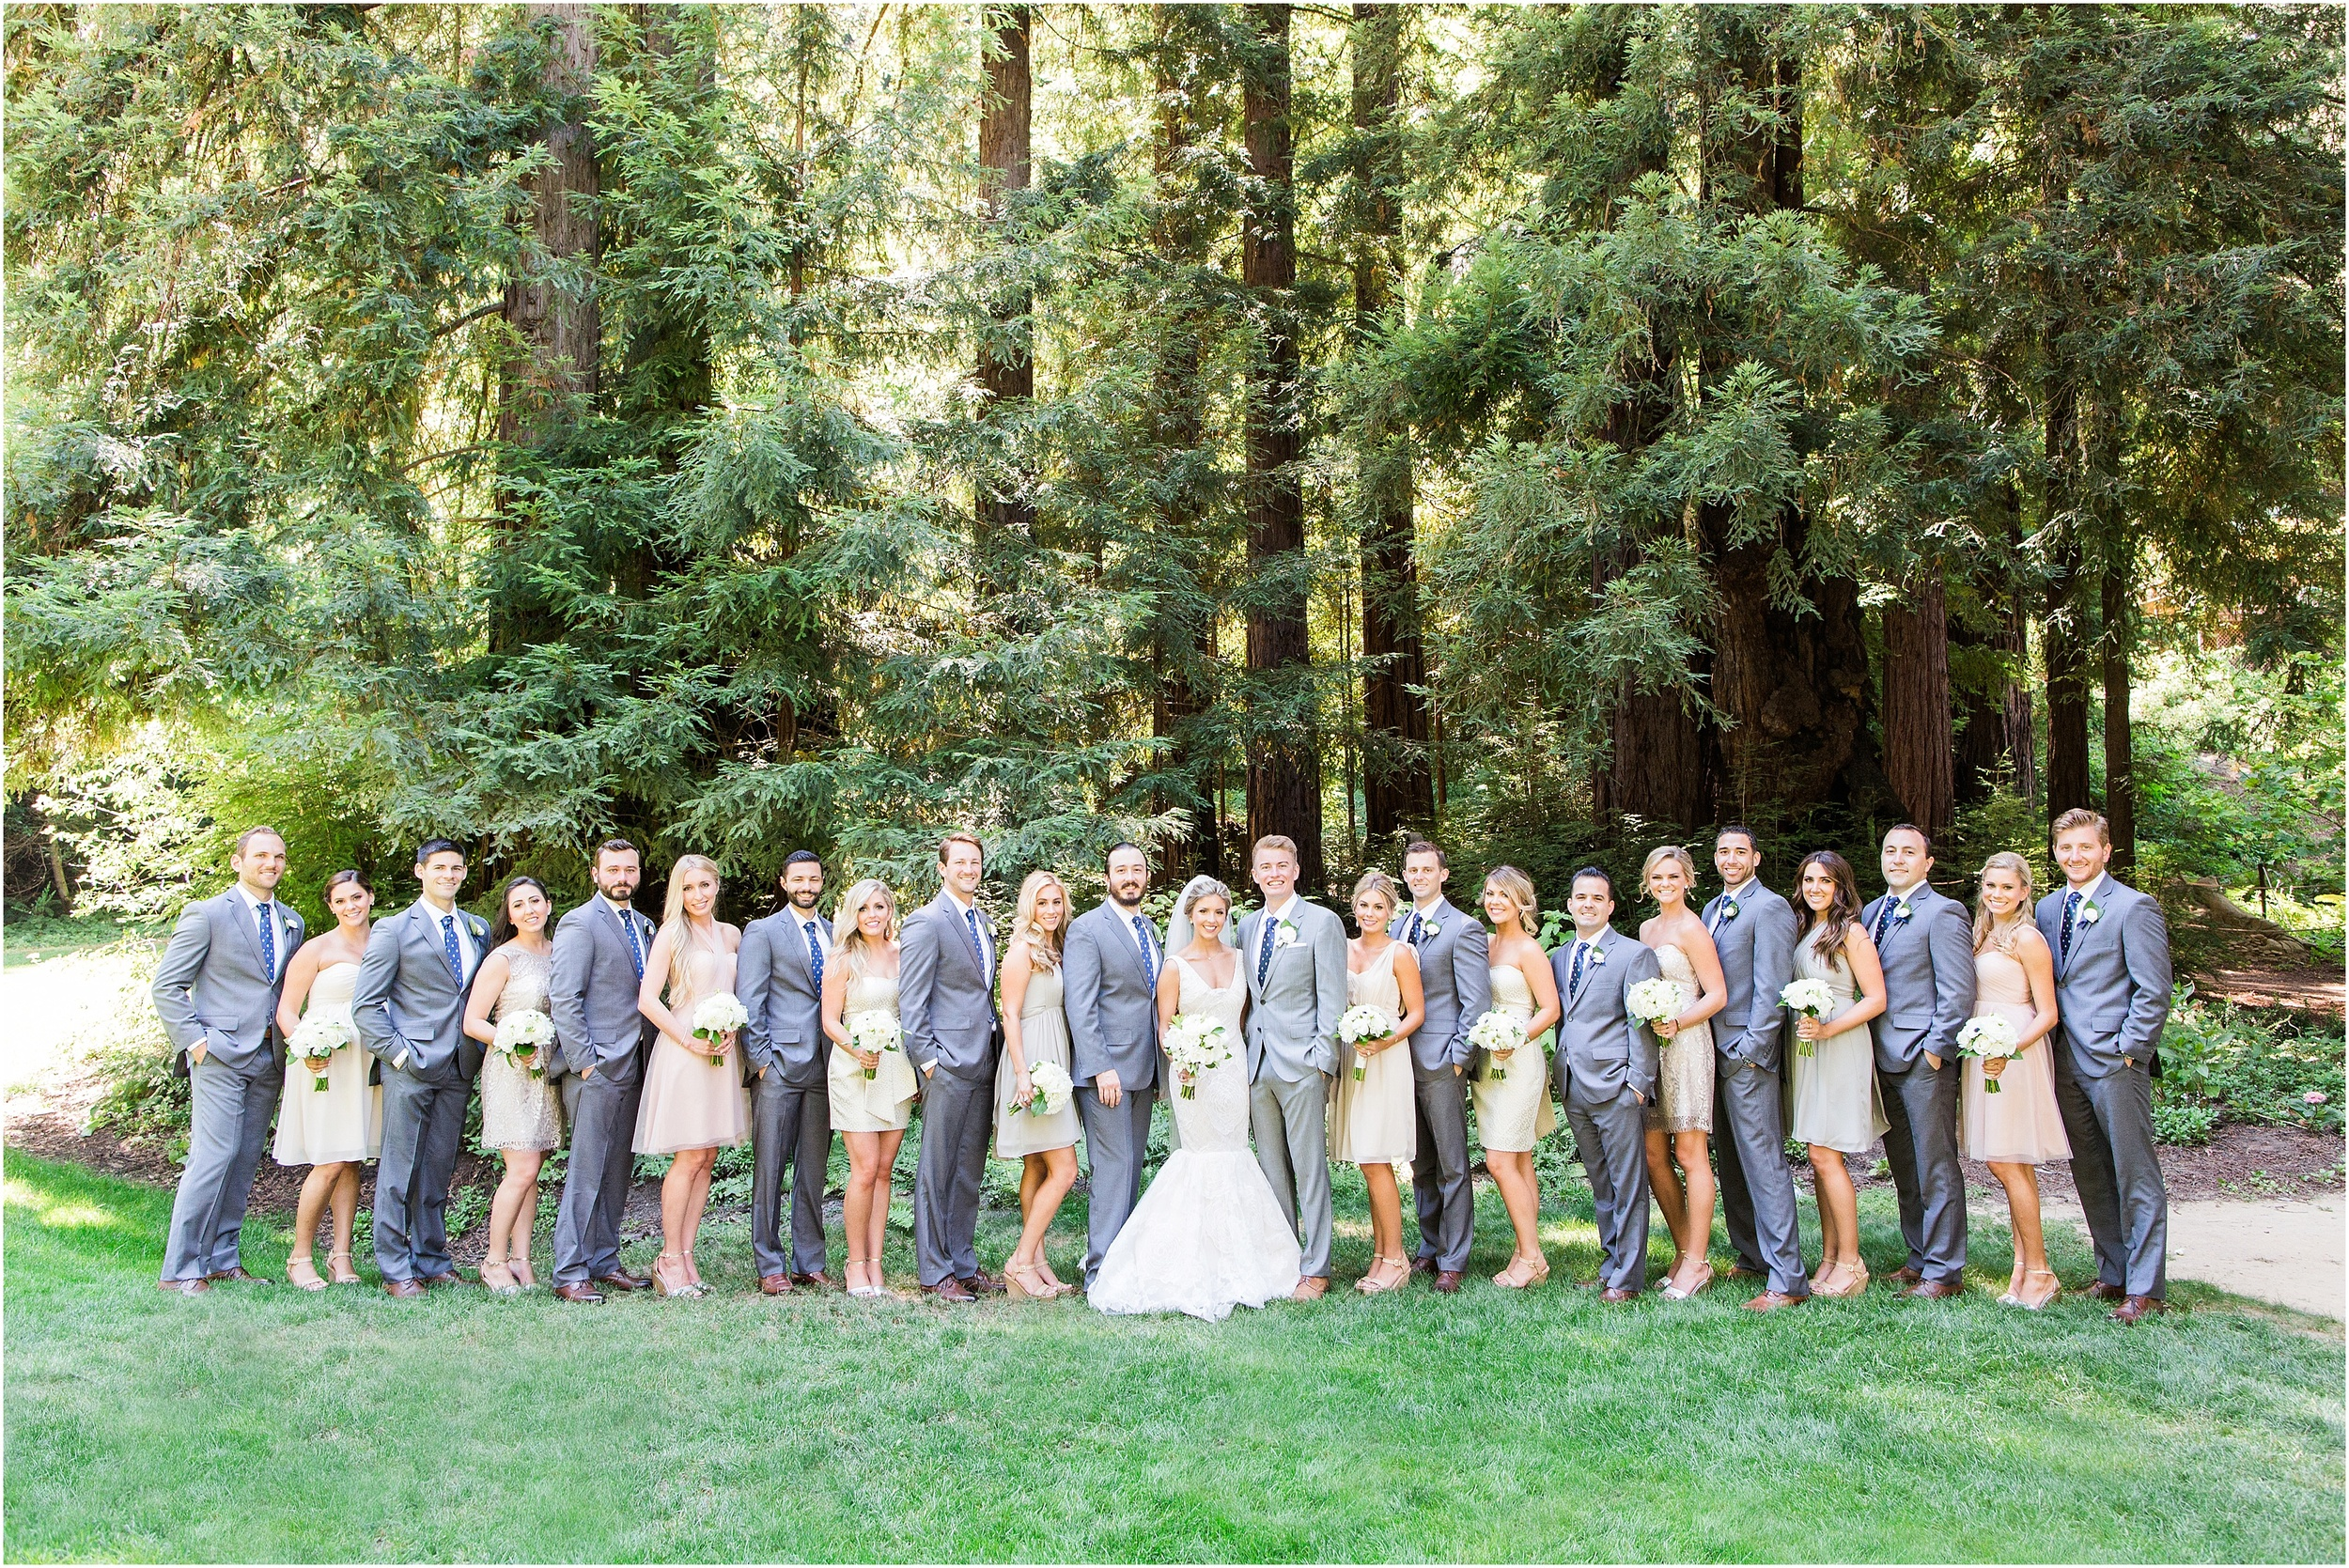 Nestldown_Rustic_Summer_Redwoods_Wedding- 019.jpg